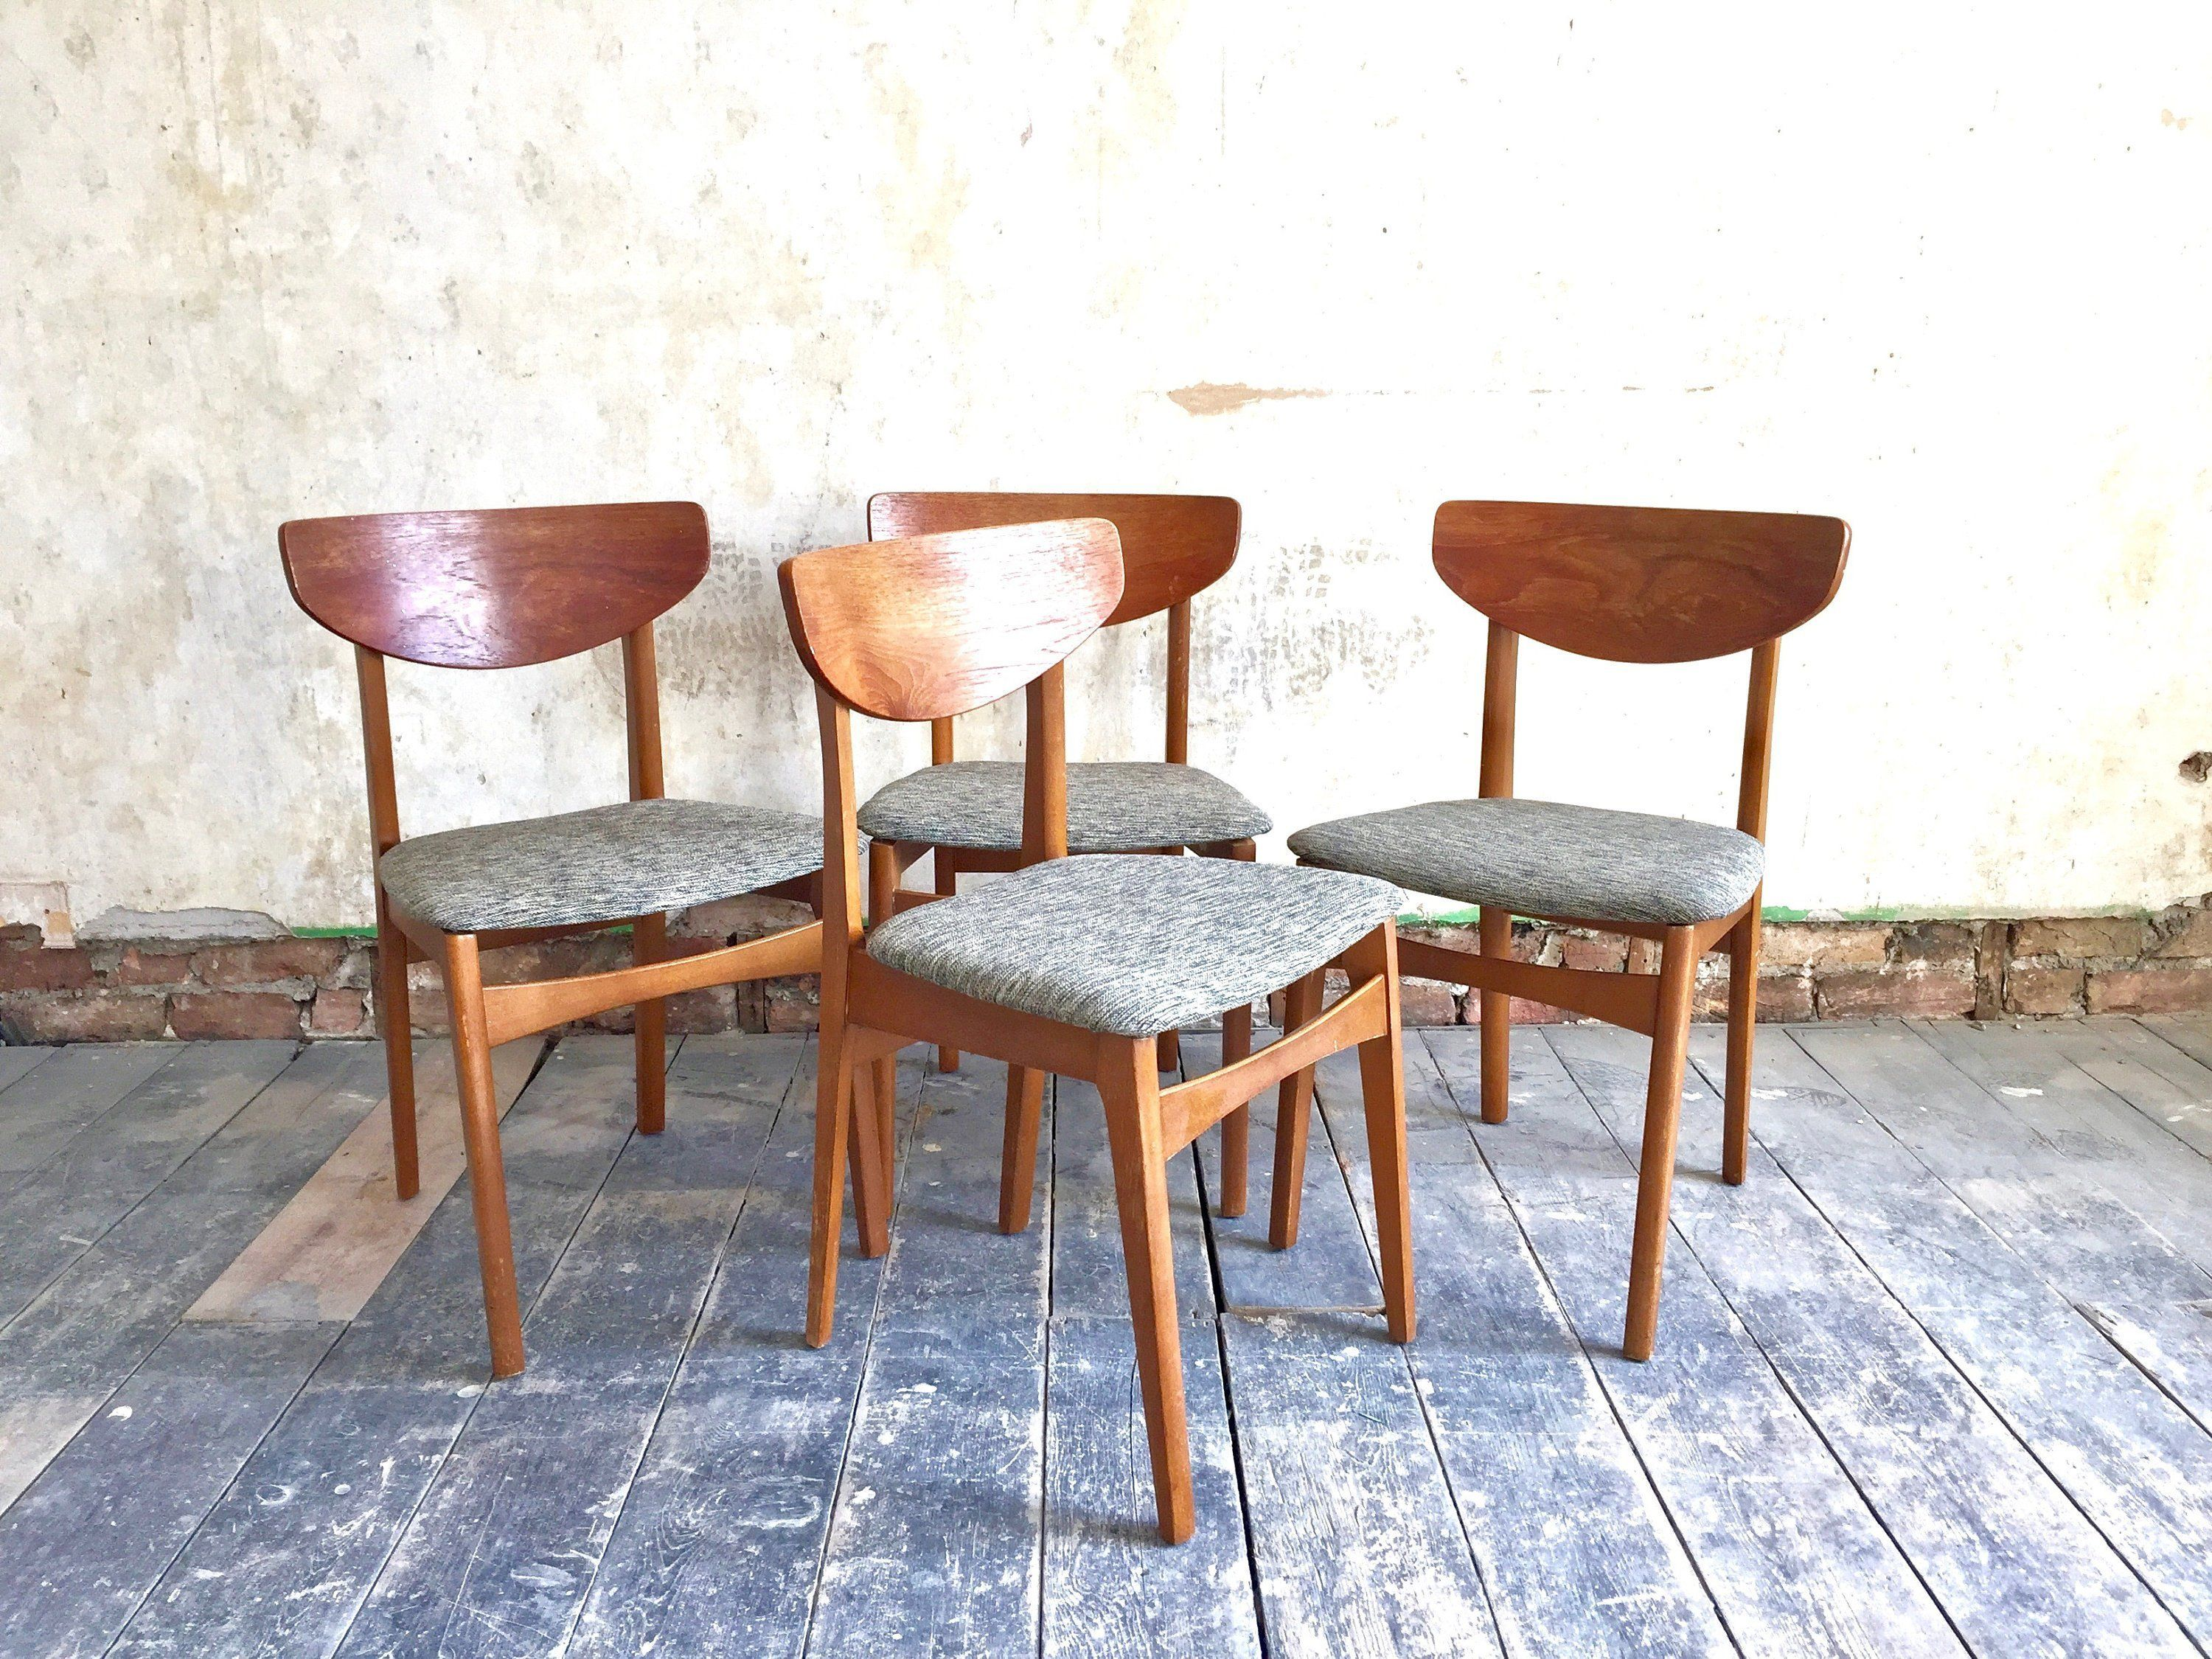 Mid Century Danish Chairs Vintage Danish Dining Chairs Retro Teak Kitchen Chairs Mid Century Mo Vintage Chairs Danish Dining Chairs Mid Century Modern Chair